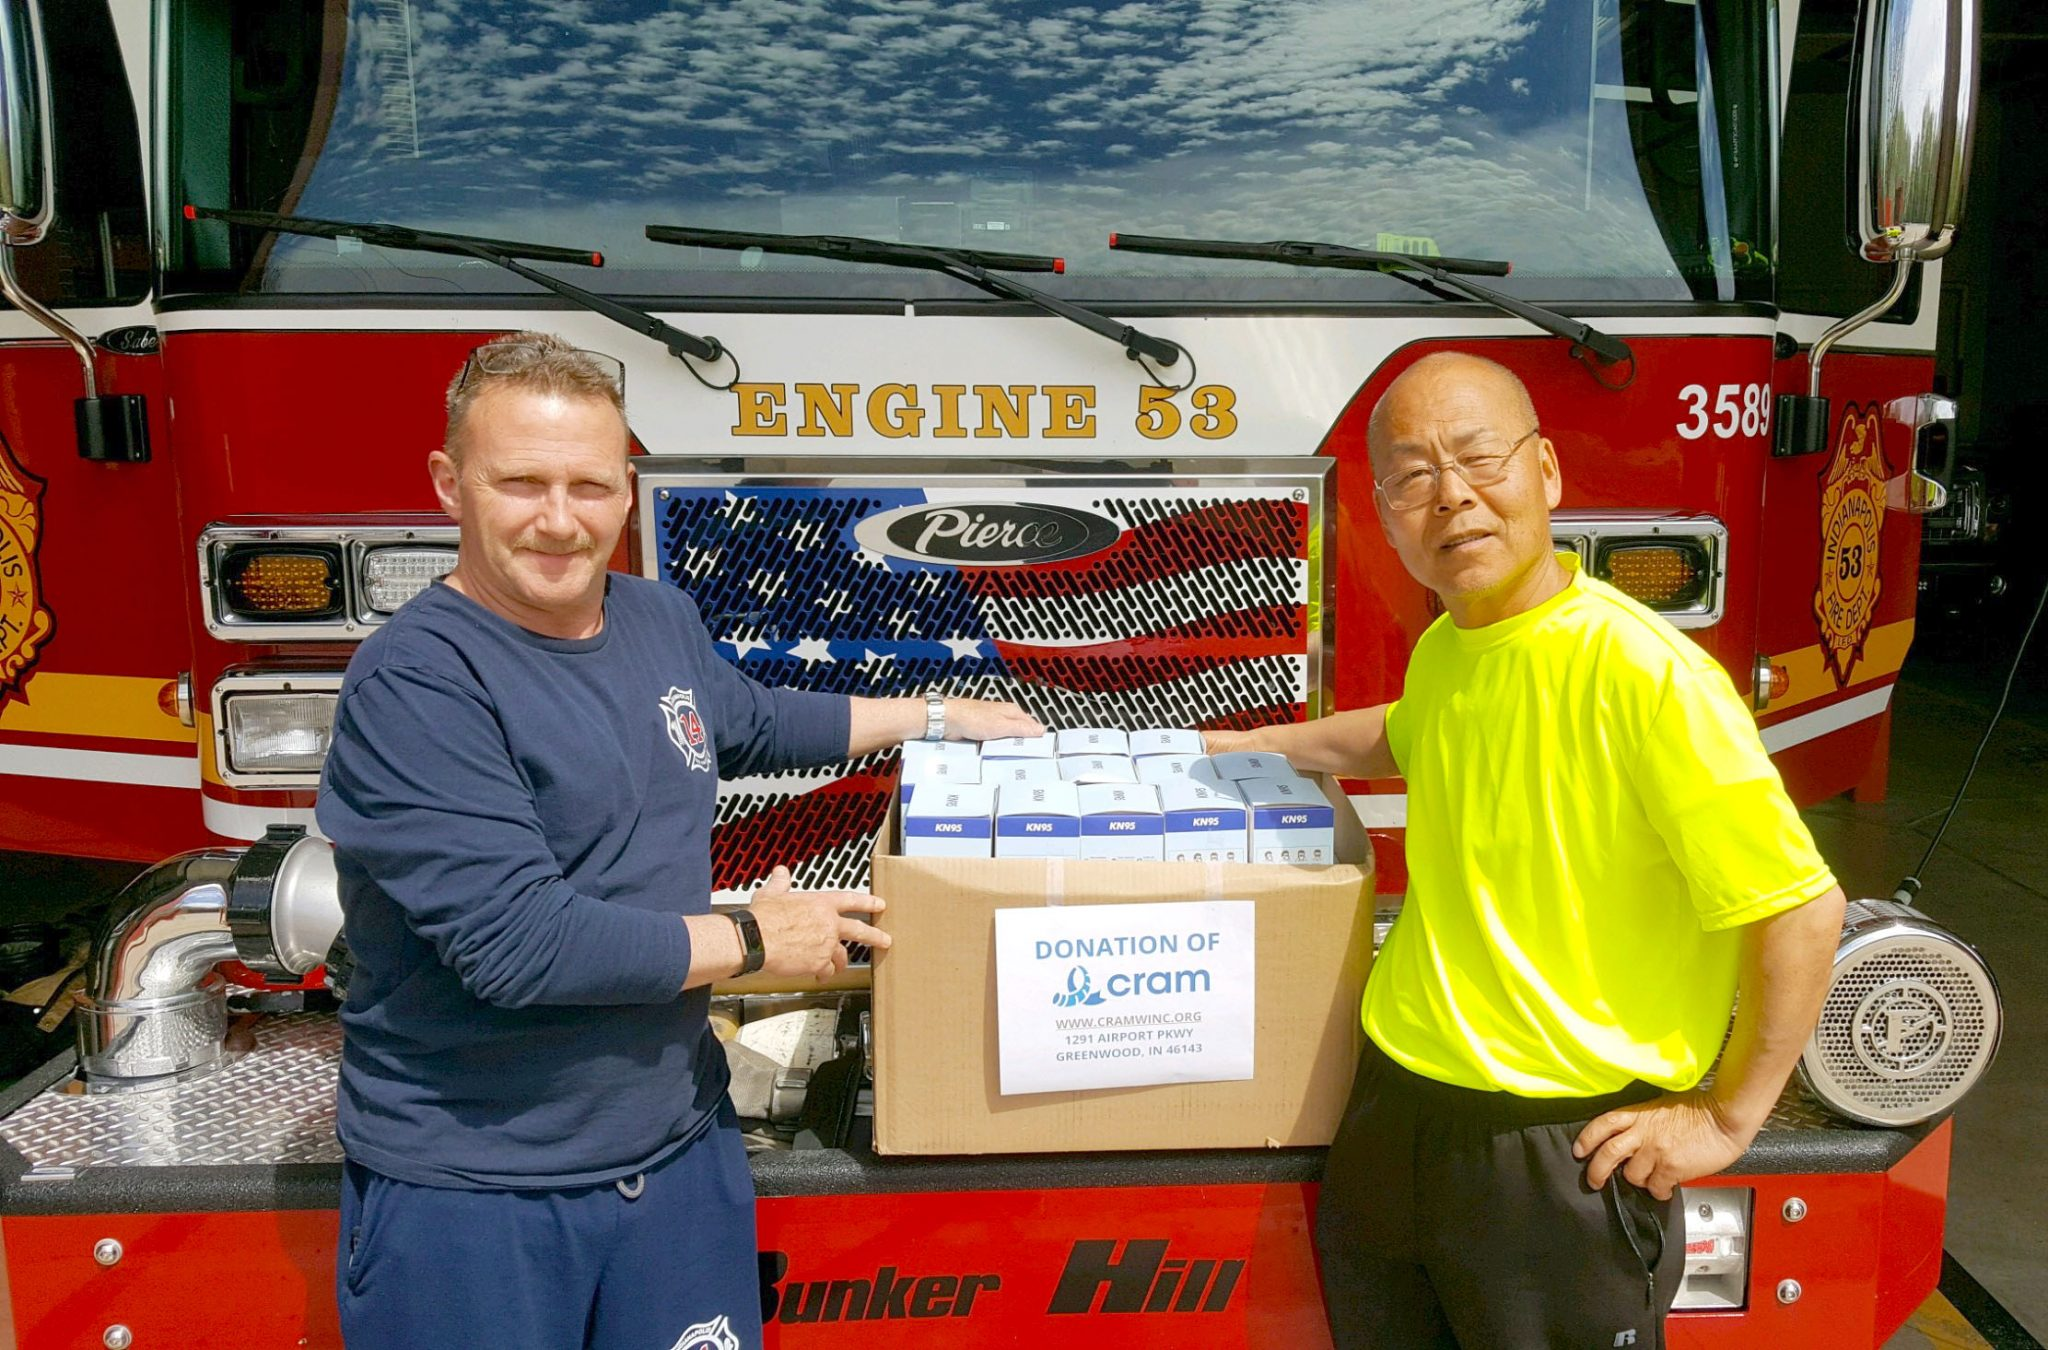 N95 Masks Donated to Station 53 Fire Department in Indiana